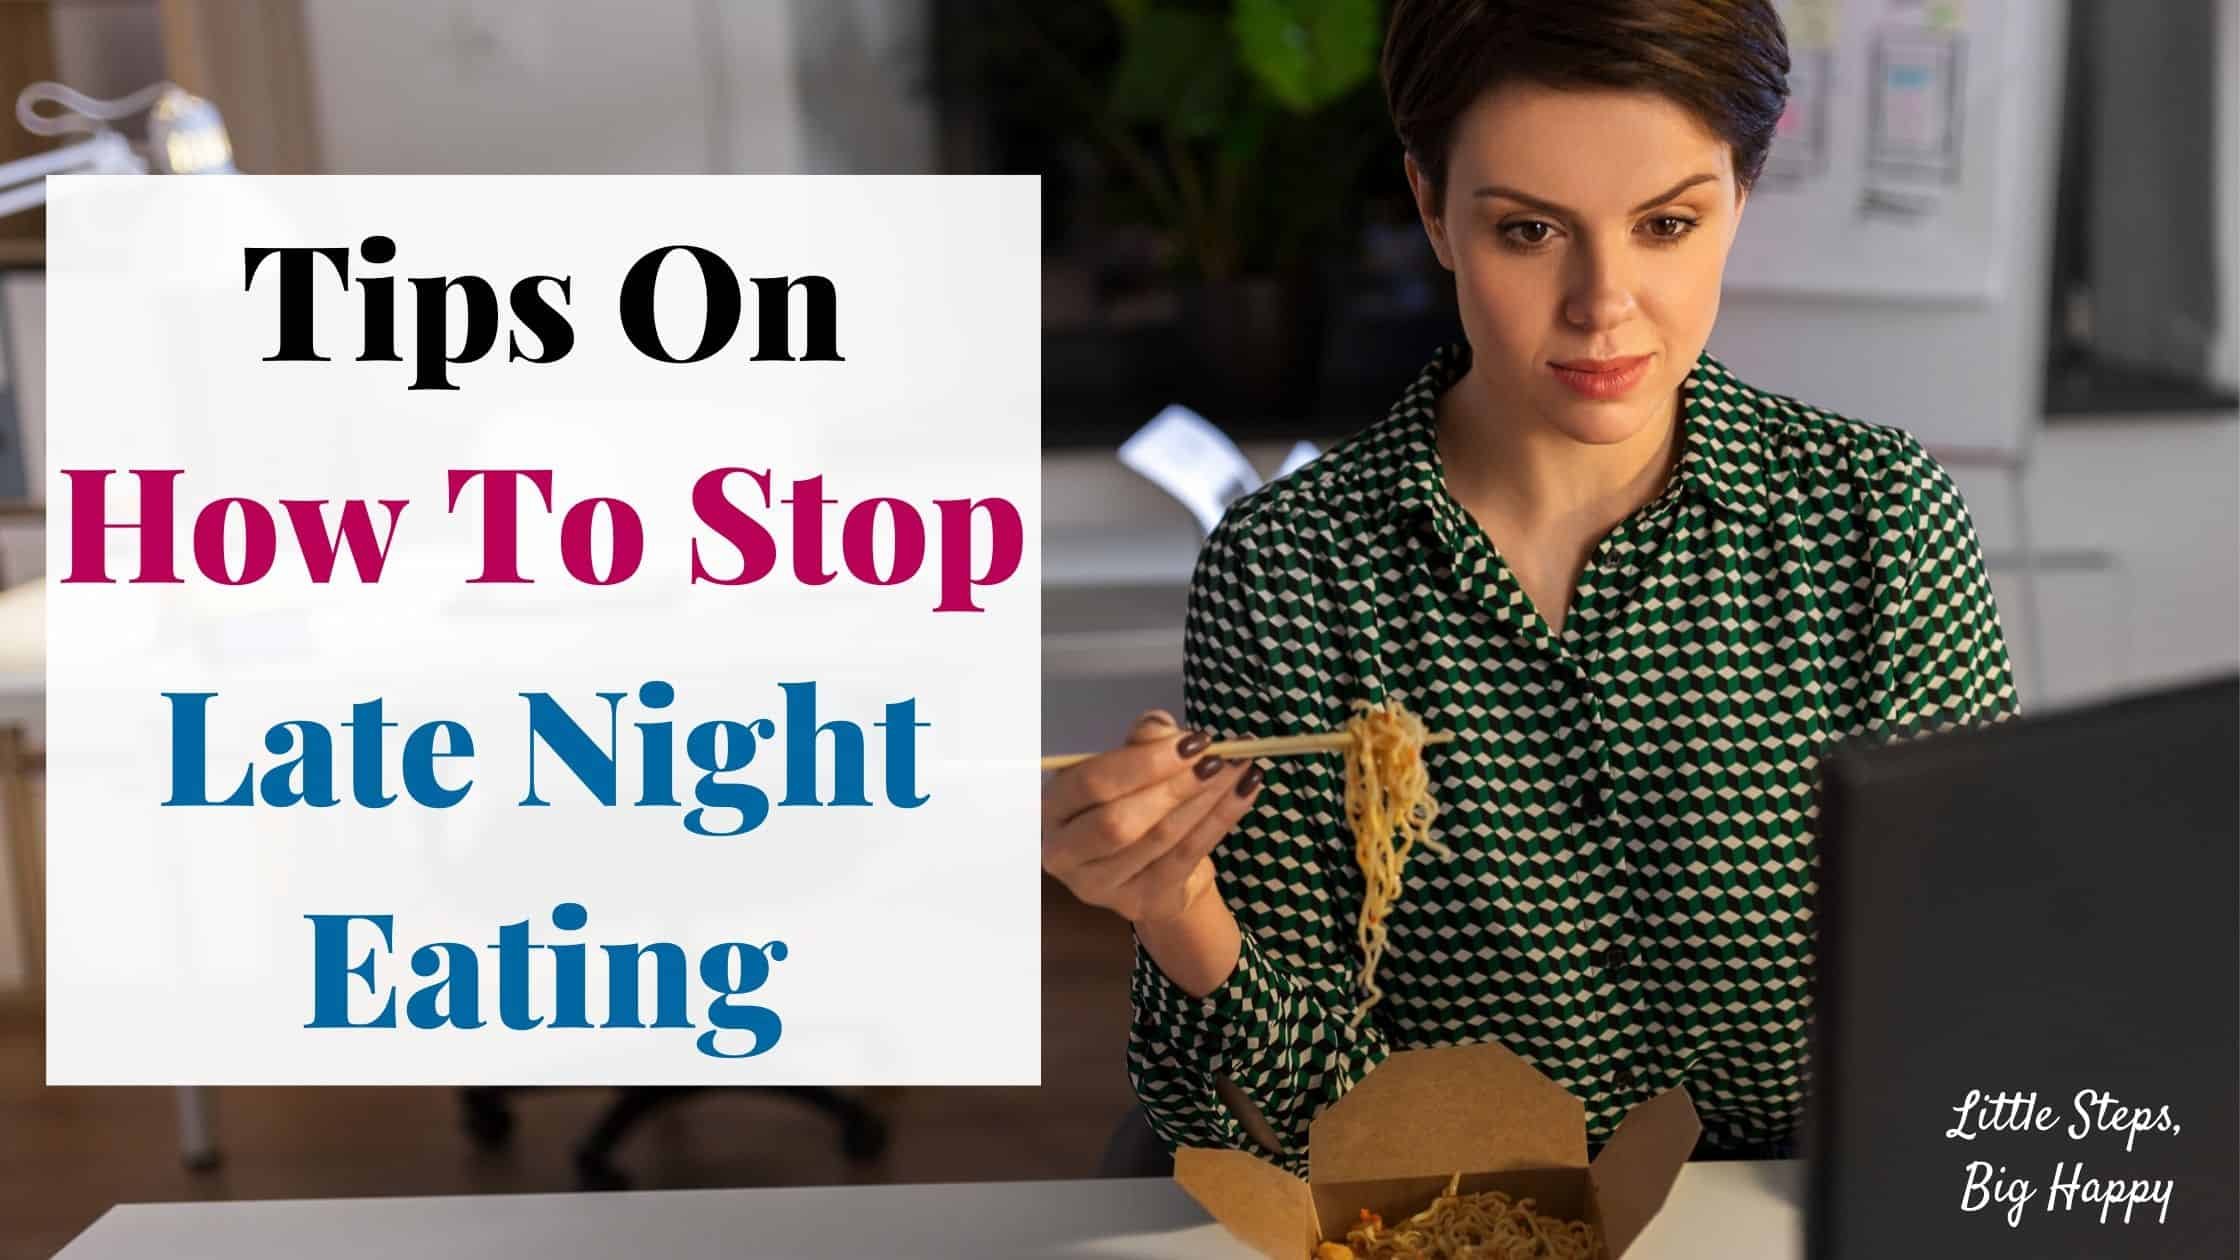 Tips On How To Stop Late Night Eating